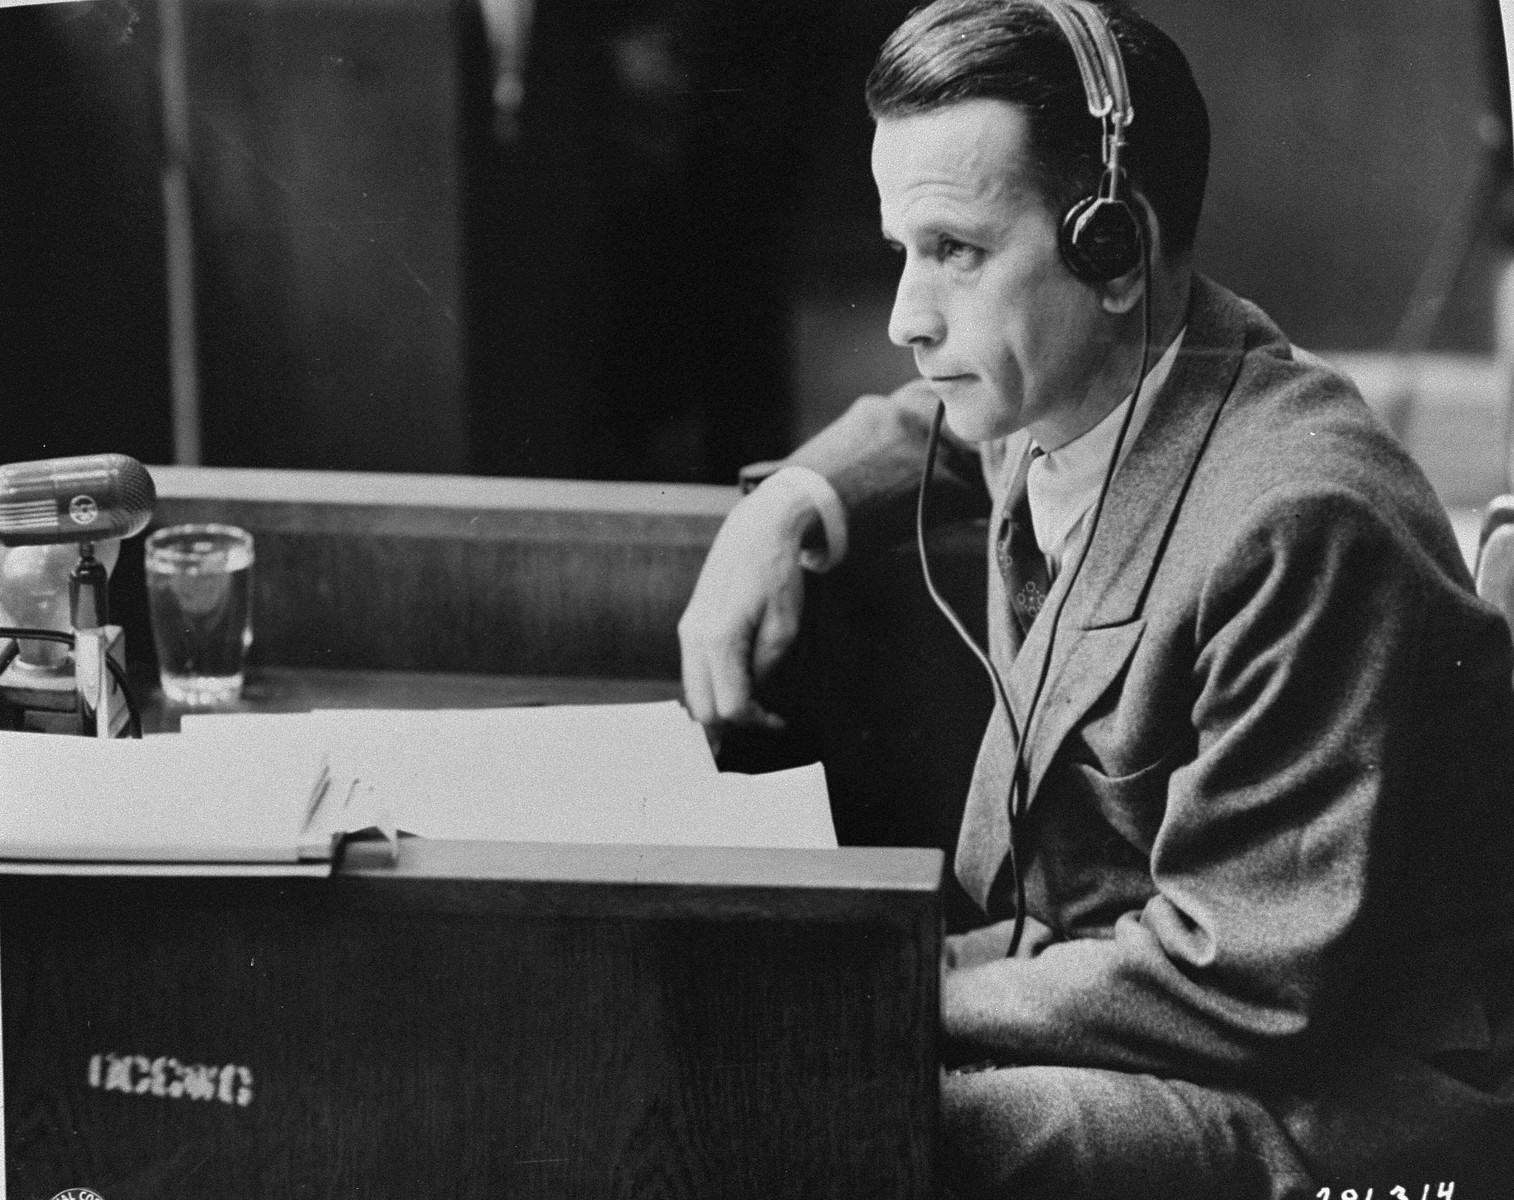 Dr. Waldemar Hoven, the former chief doctor at Buchenwald, testifies in his own defense at the Doctors Trial.